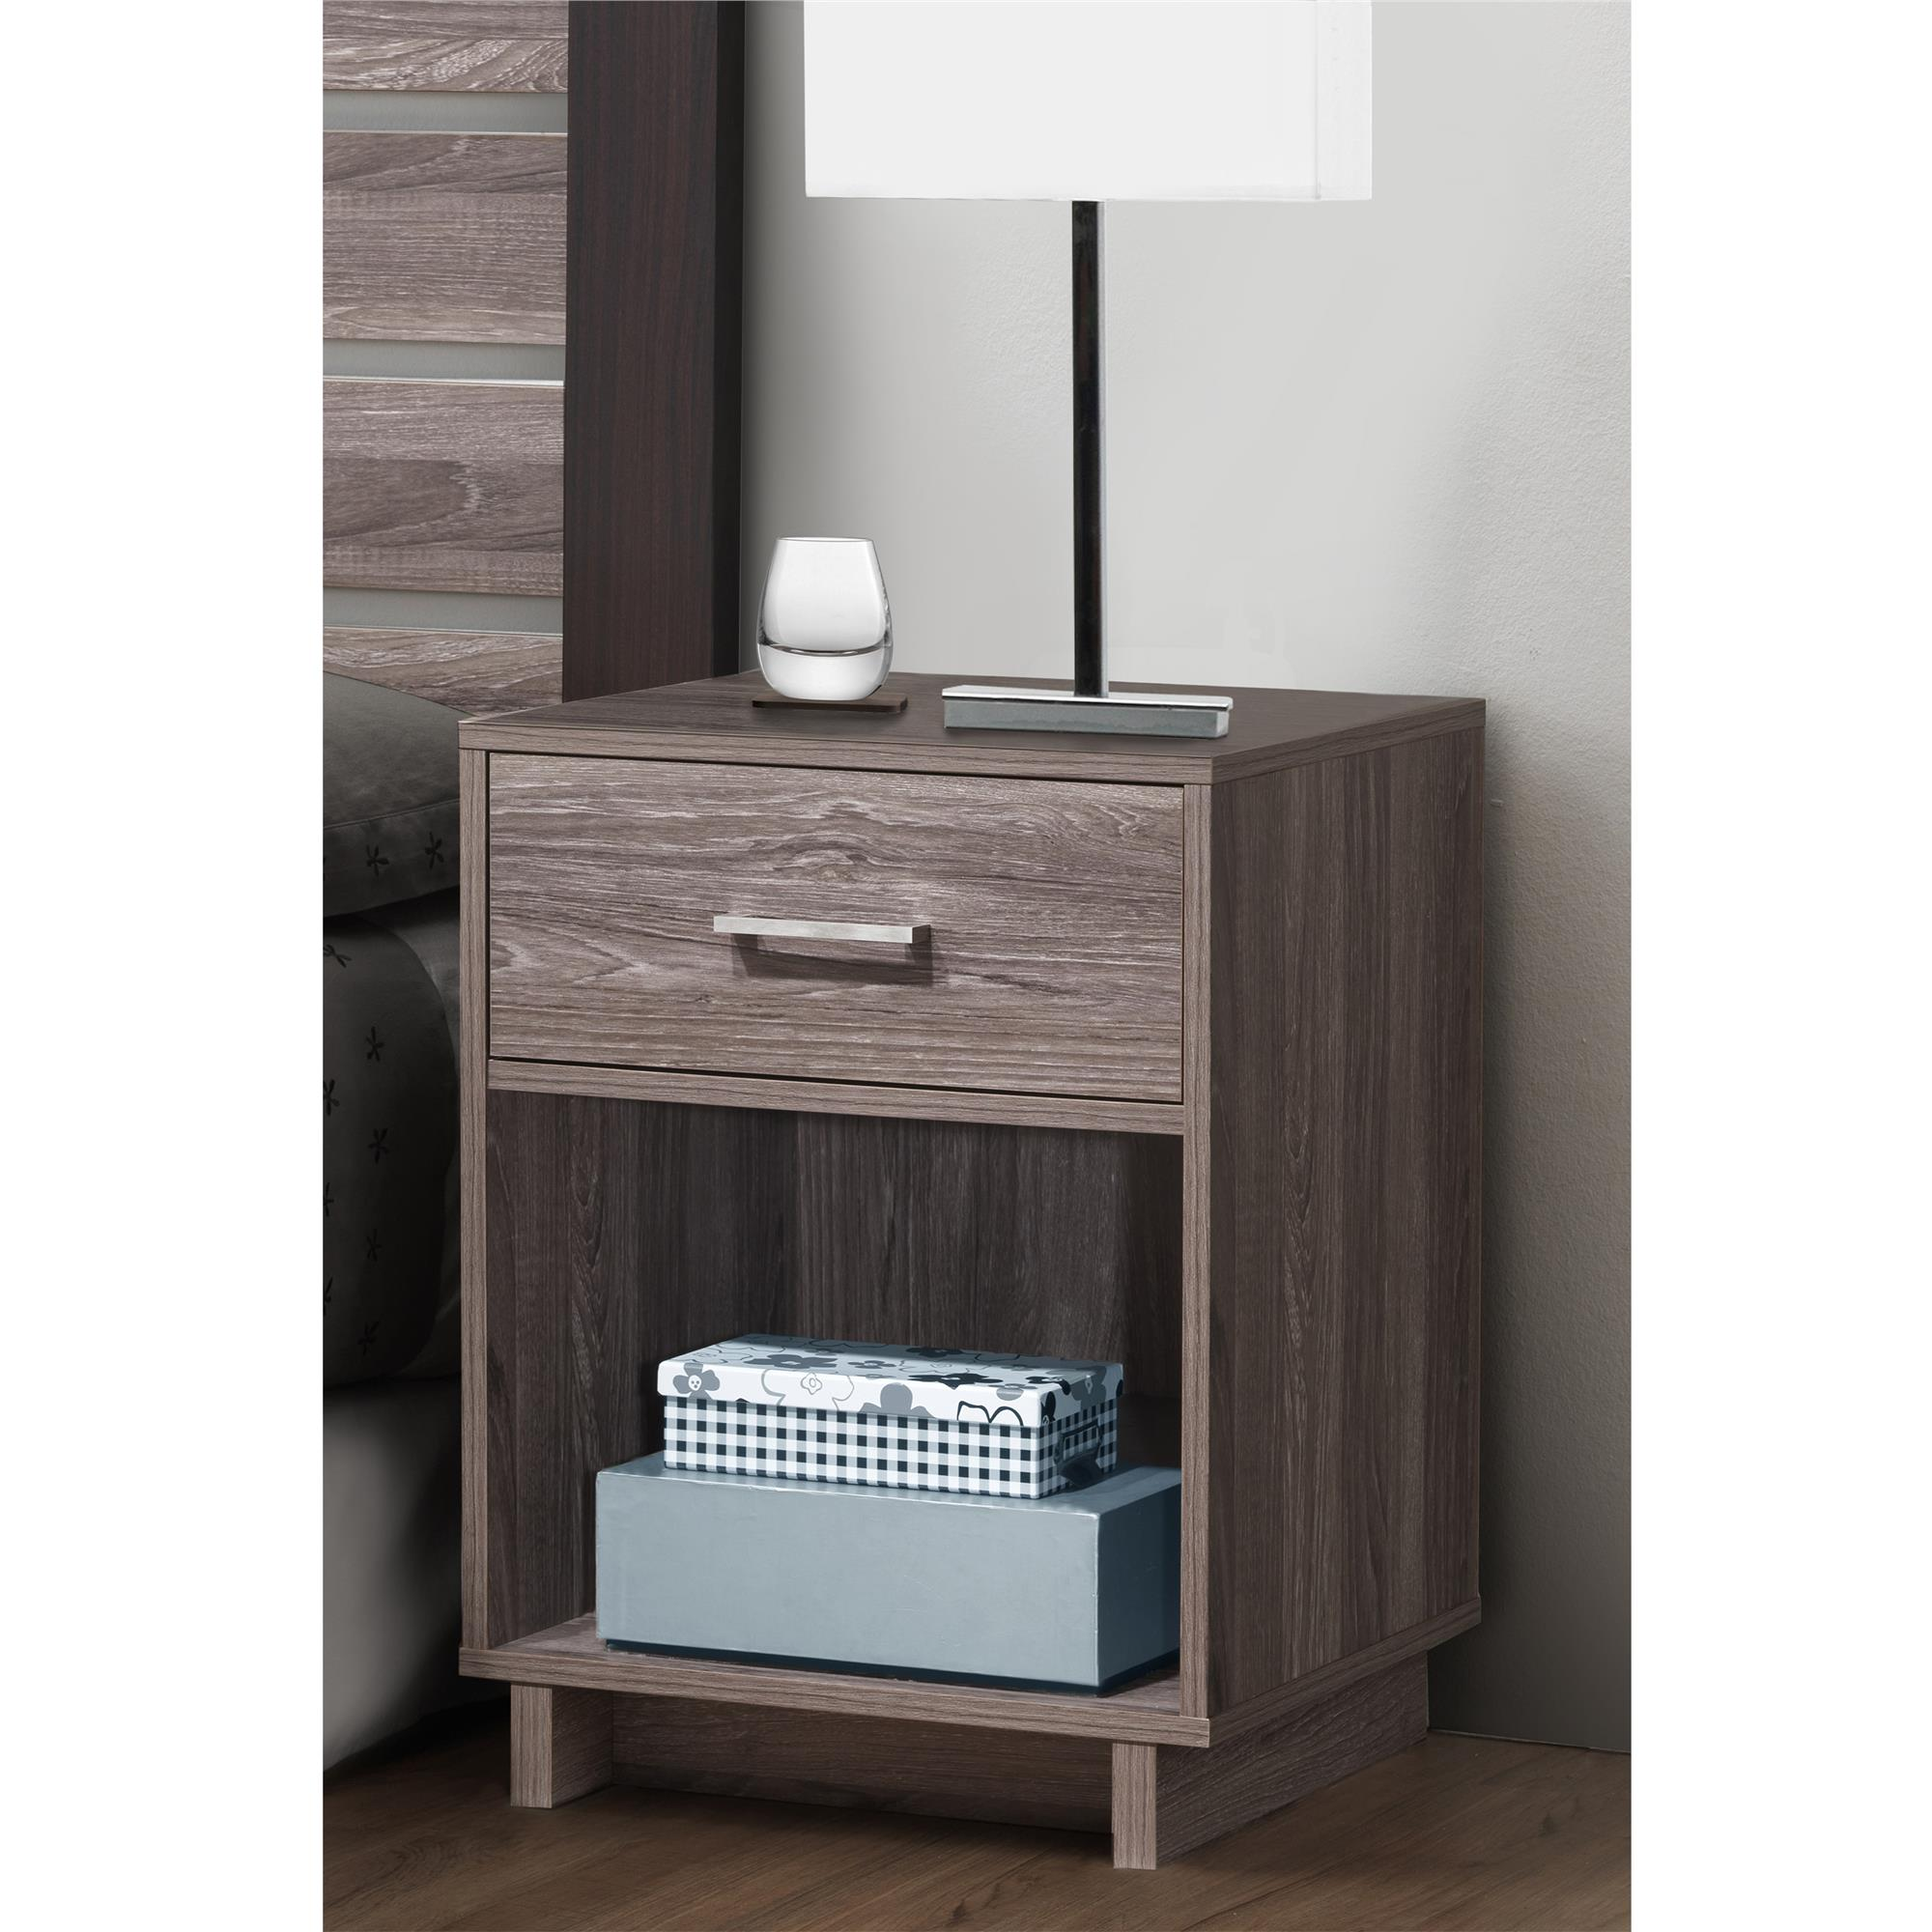 Mainstays Silverton Nightstand, Multiple Colors